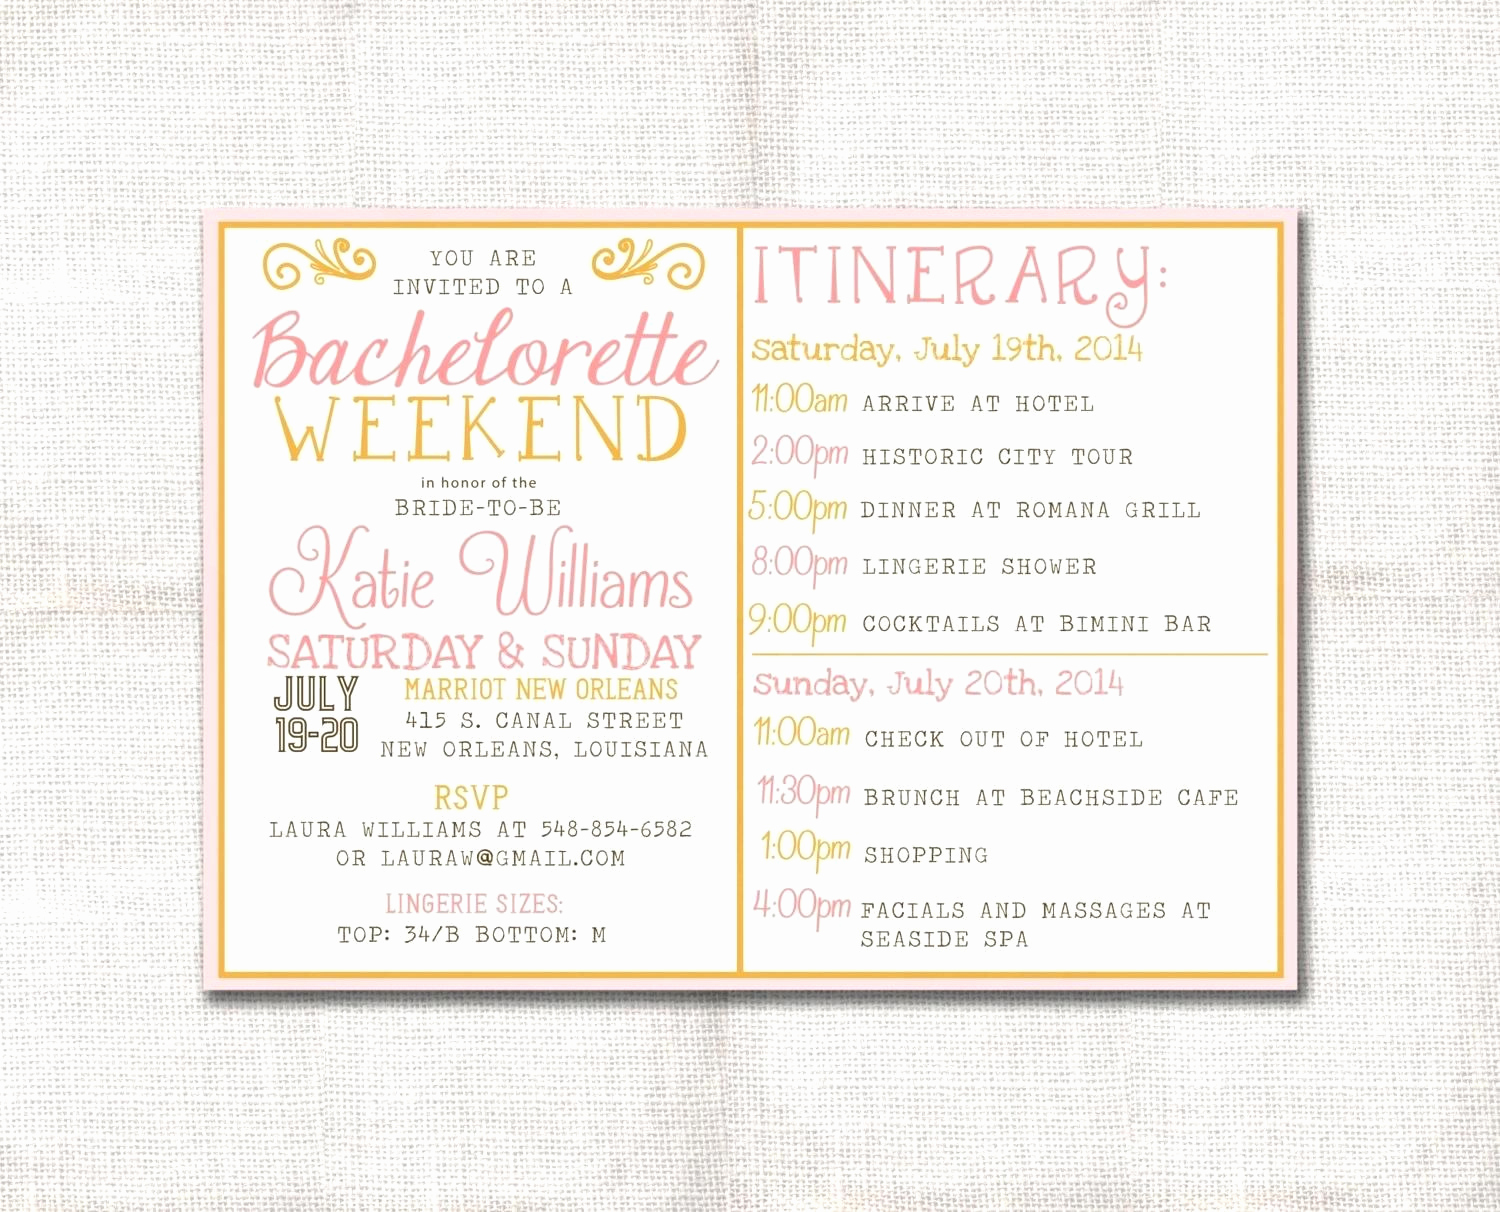 Bachelorette Party Itinerary Template Elegant Template Bachelorette Party Agenda Template Zoom Free